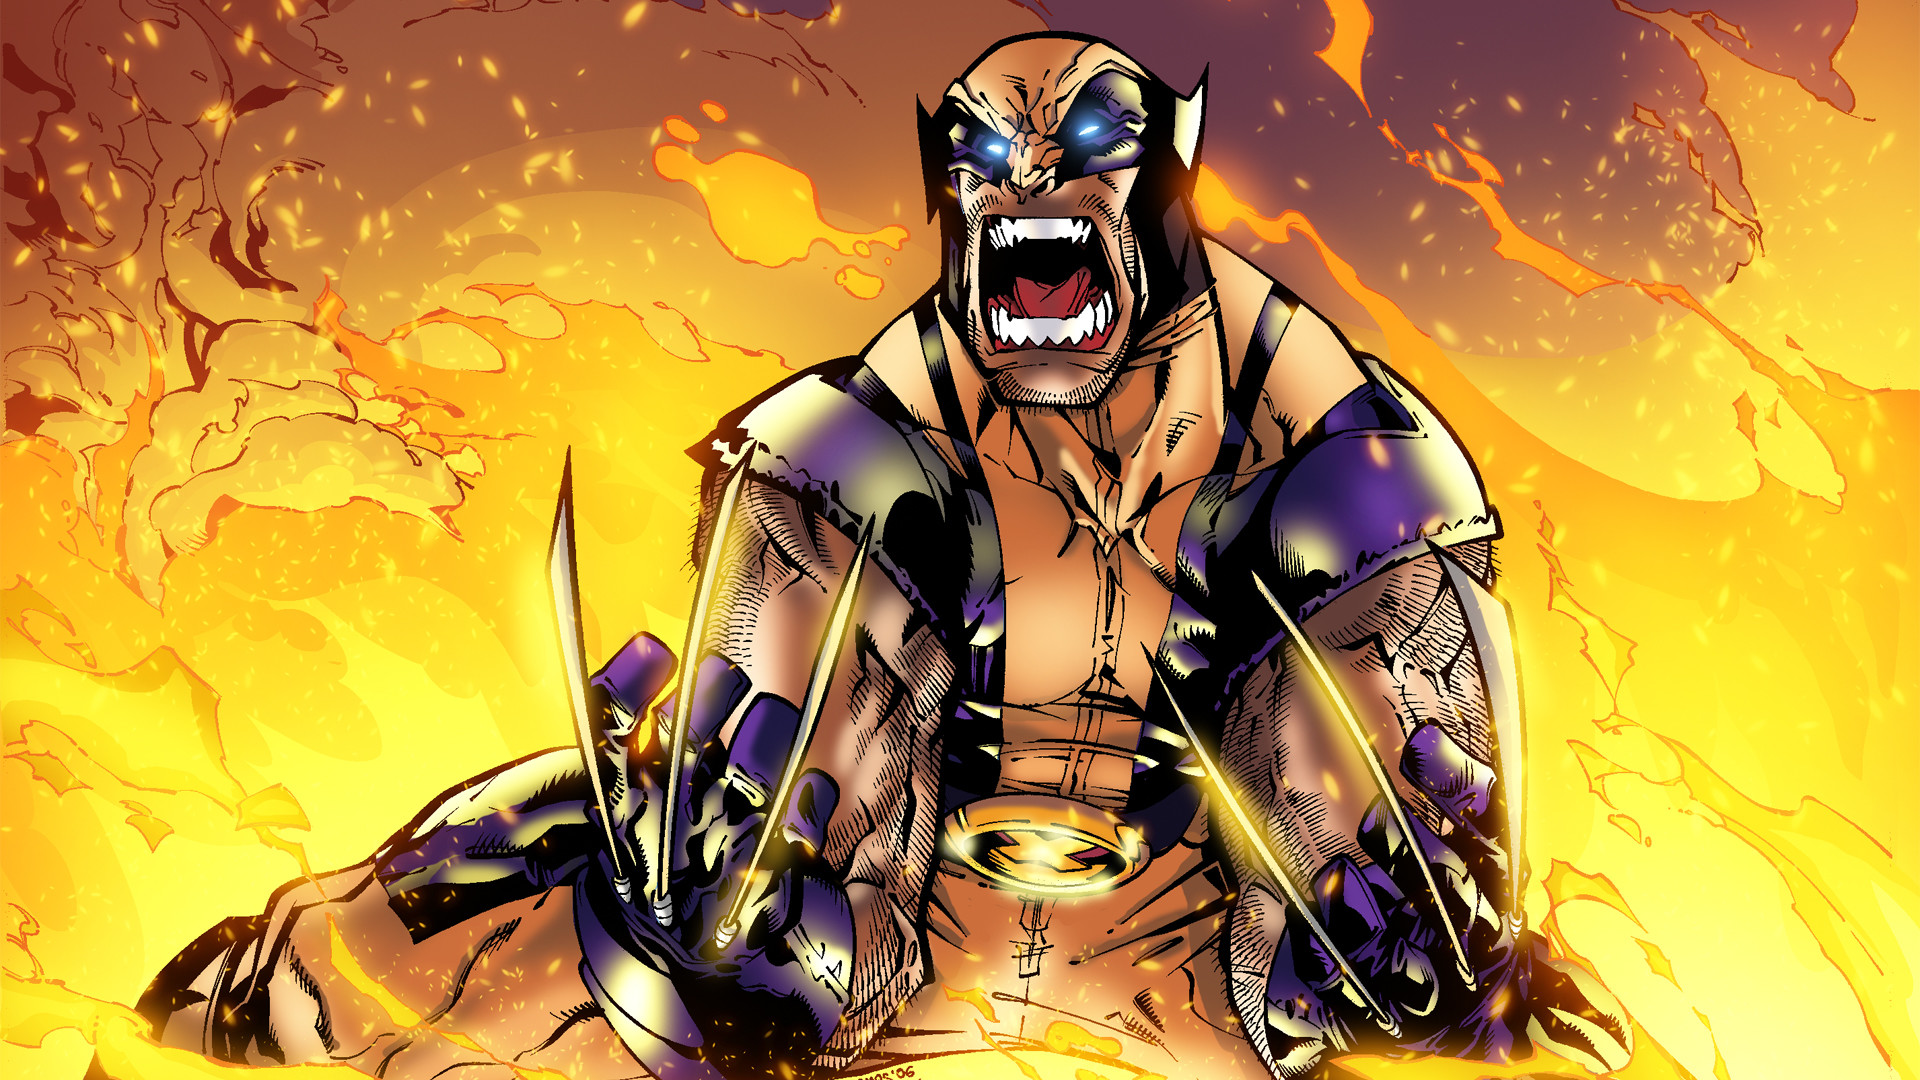 Wolverine | HDQ Cover Pics